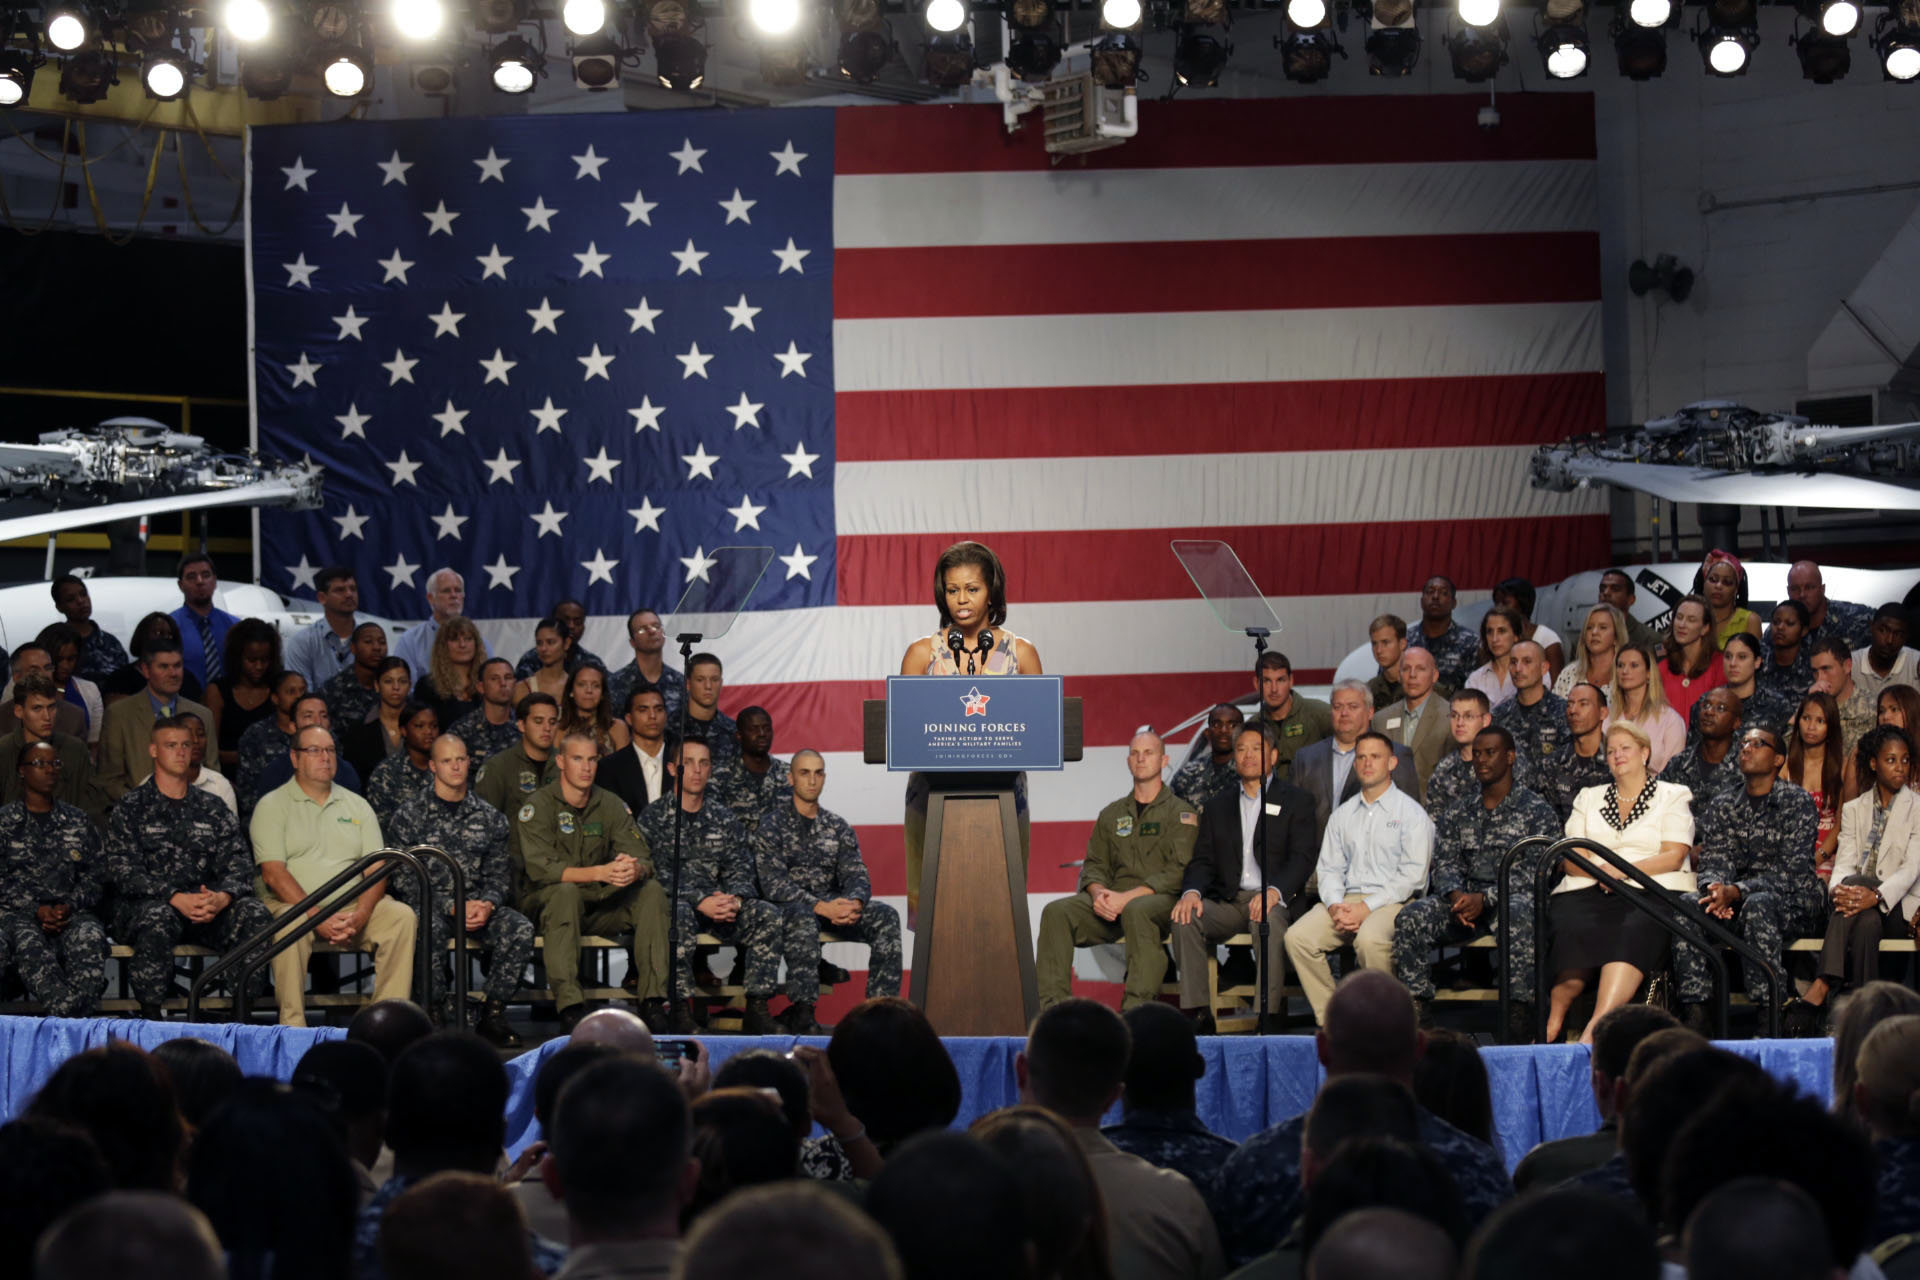 First Lady Michelle Obama delivers remarks during a Joining Forces event (August 22, 2012)